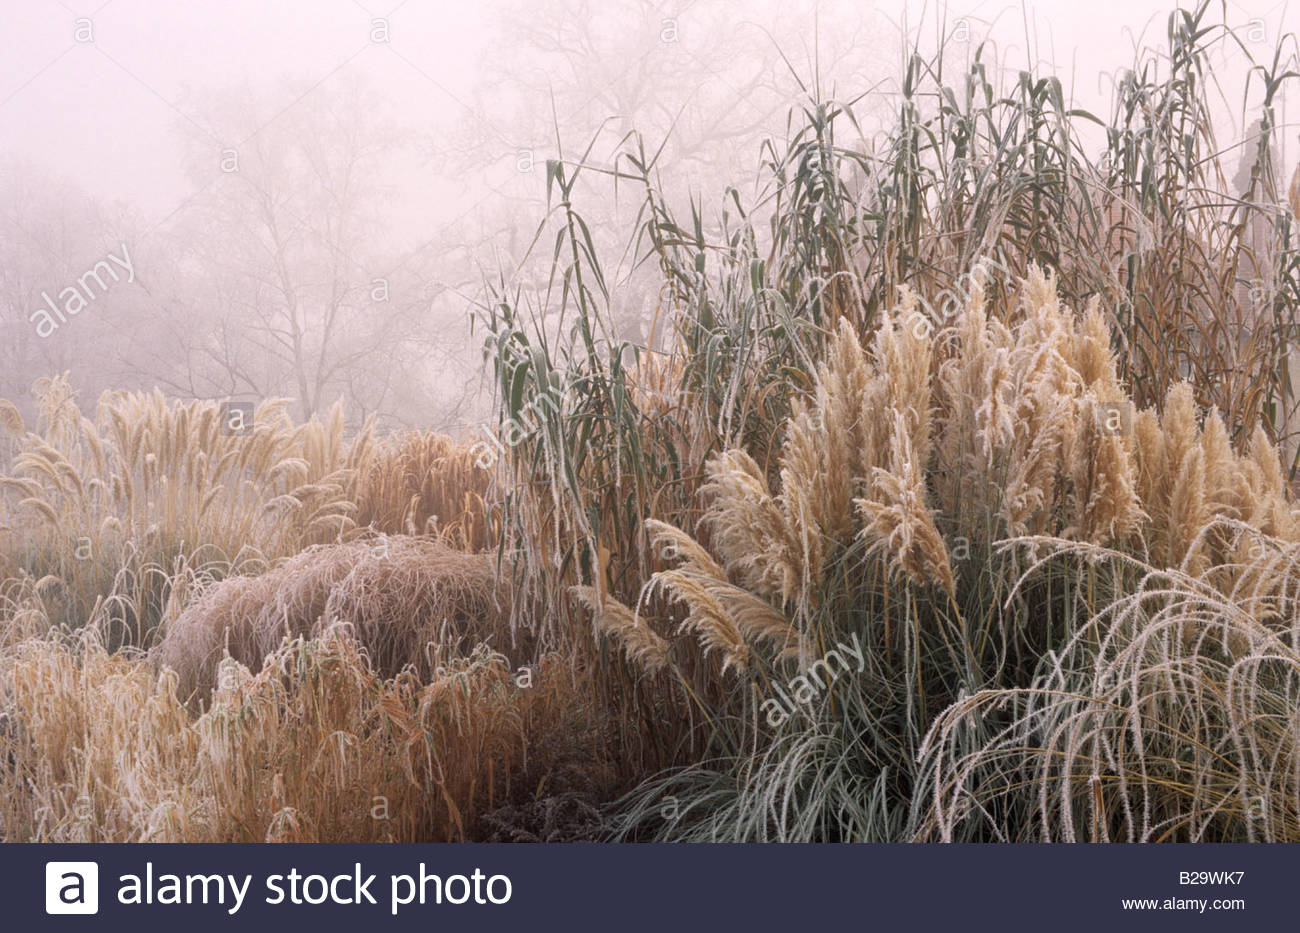 Rhs wisley surrey ornamental grasses pampass grass cortaderia stock rhs wisley surrey ornamental grasses pampass grass cortaderia selloana in winter frost and fog workwithnaturefo